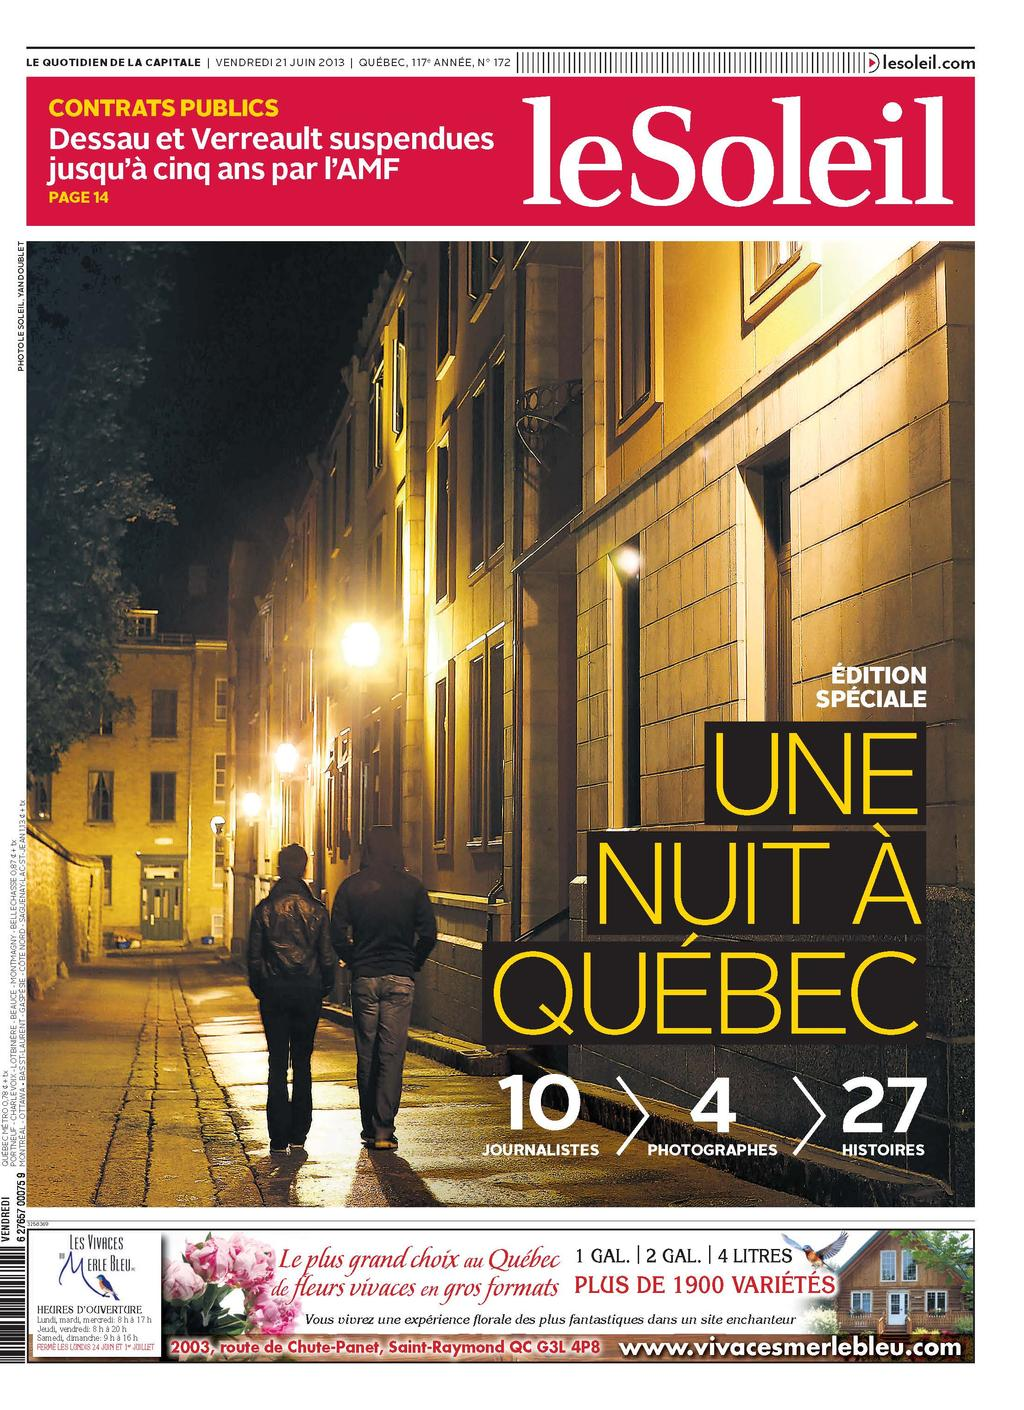 Ce dossier de 12 pages, auquel ont participé dix journalistes et quatre photographes, a remporté le Prix d'excellence 2013 de la Society of Newspaper Design. Design graphique : Pascale Chayer et Alain Chouinard. Direction artistique : Linda Larouche.